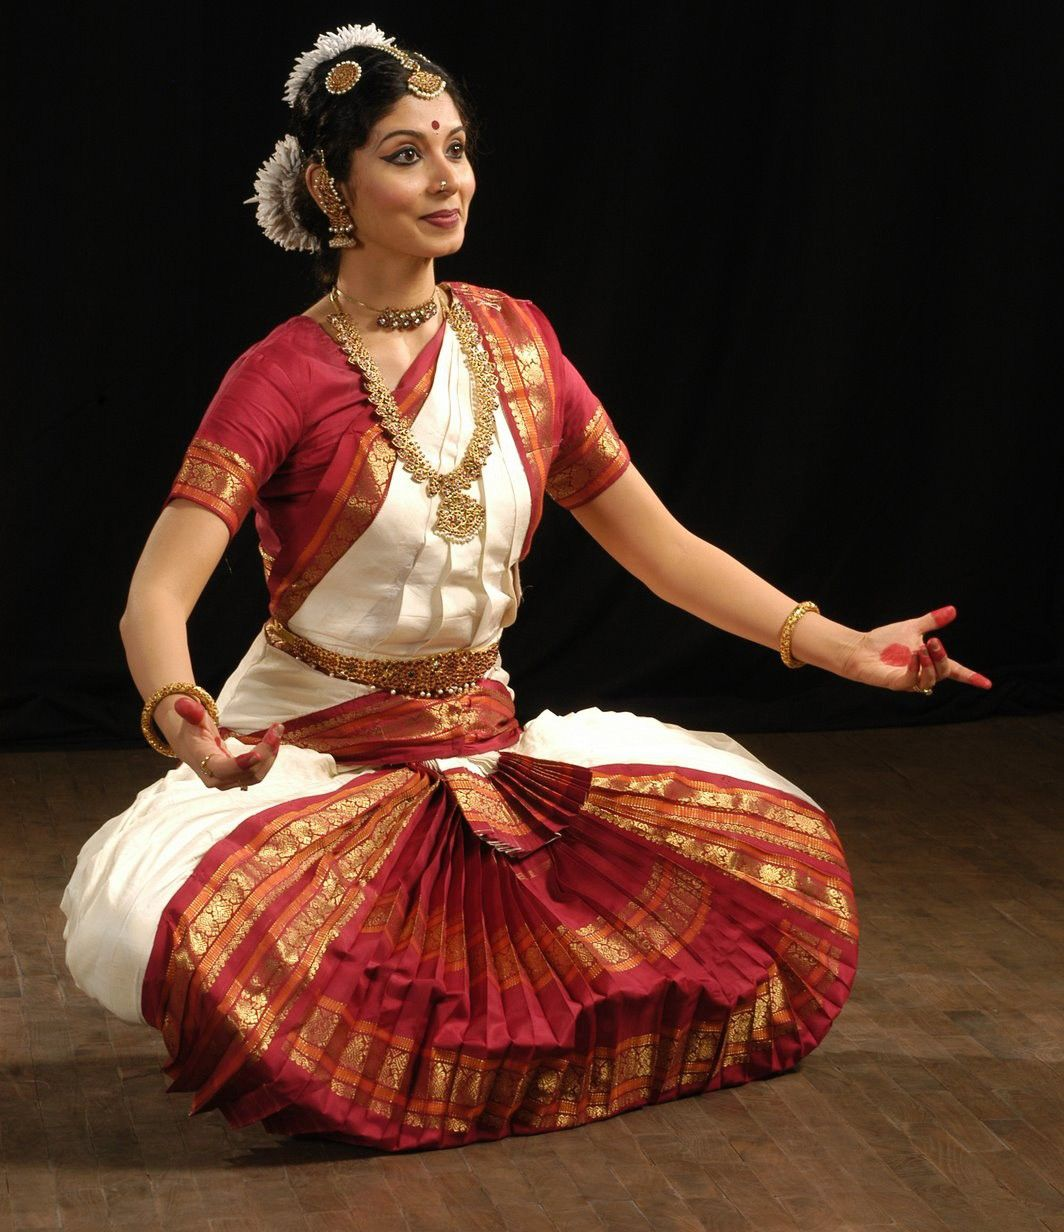 Bharatnatyam classical south indian dance id love to